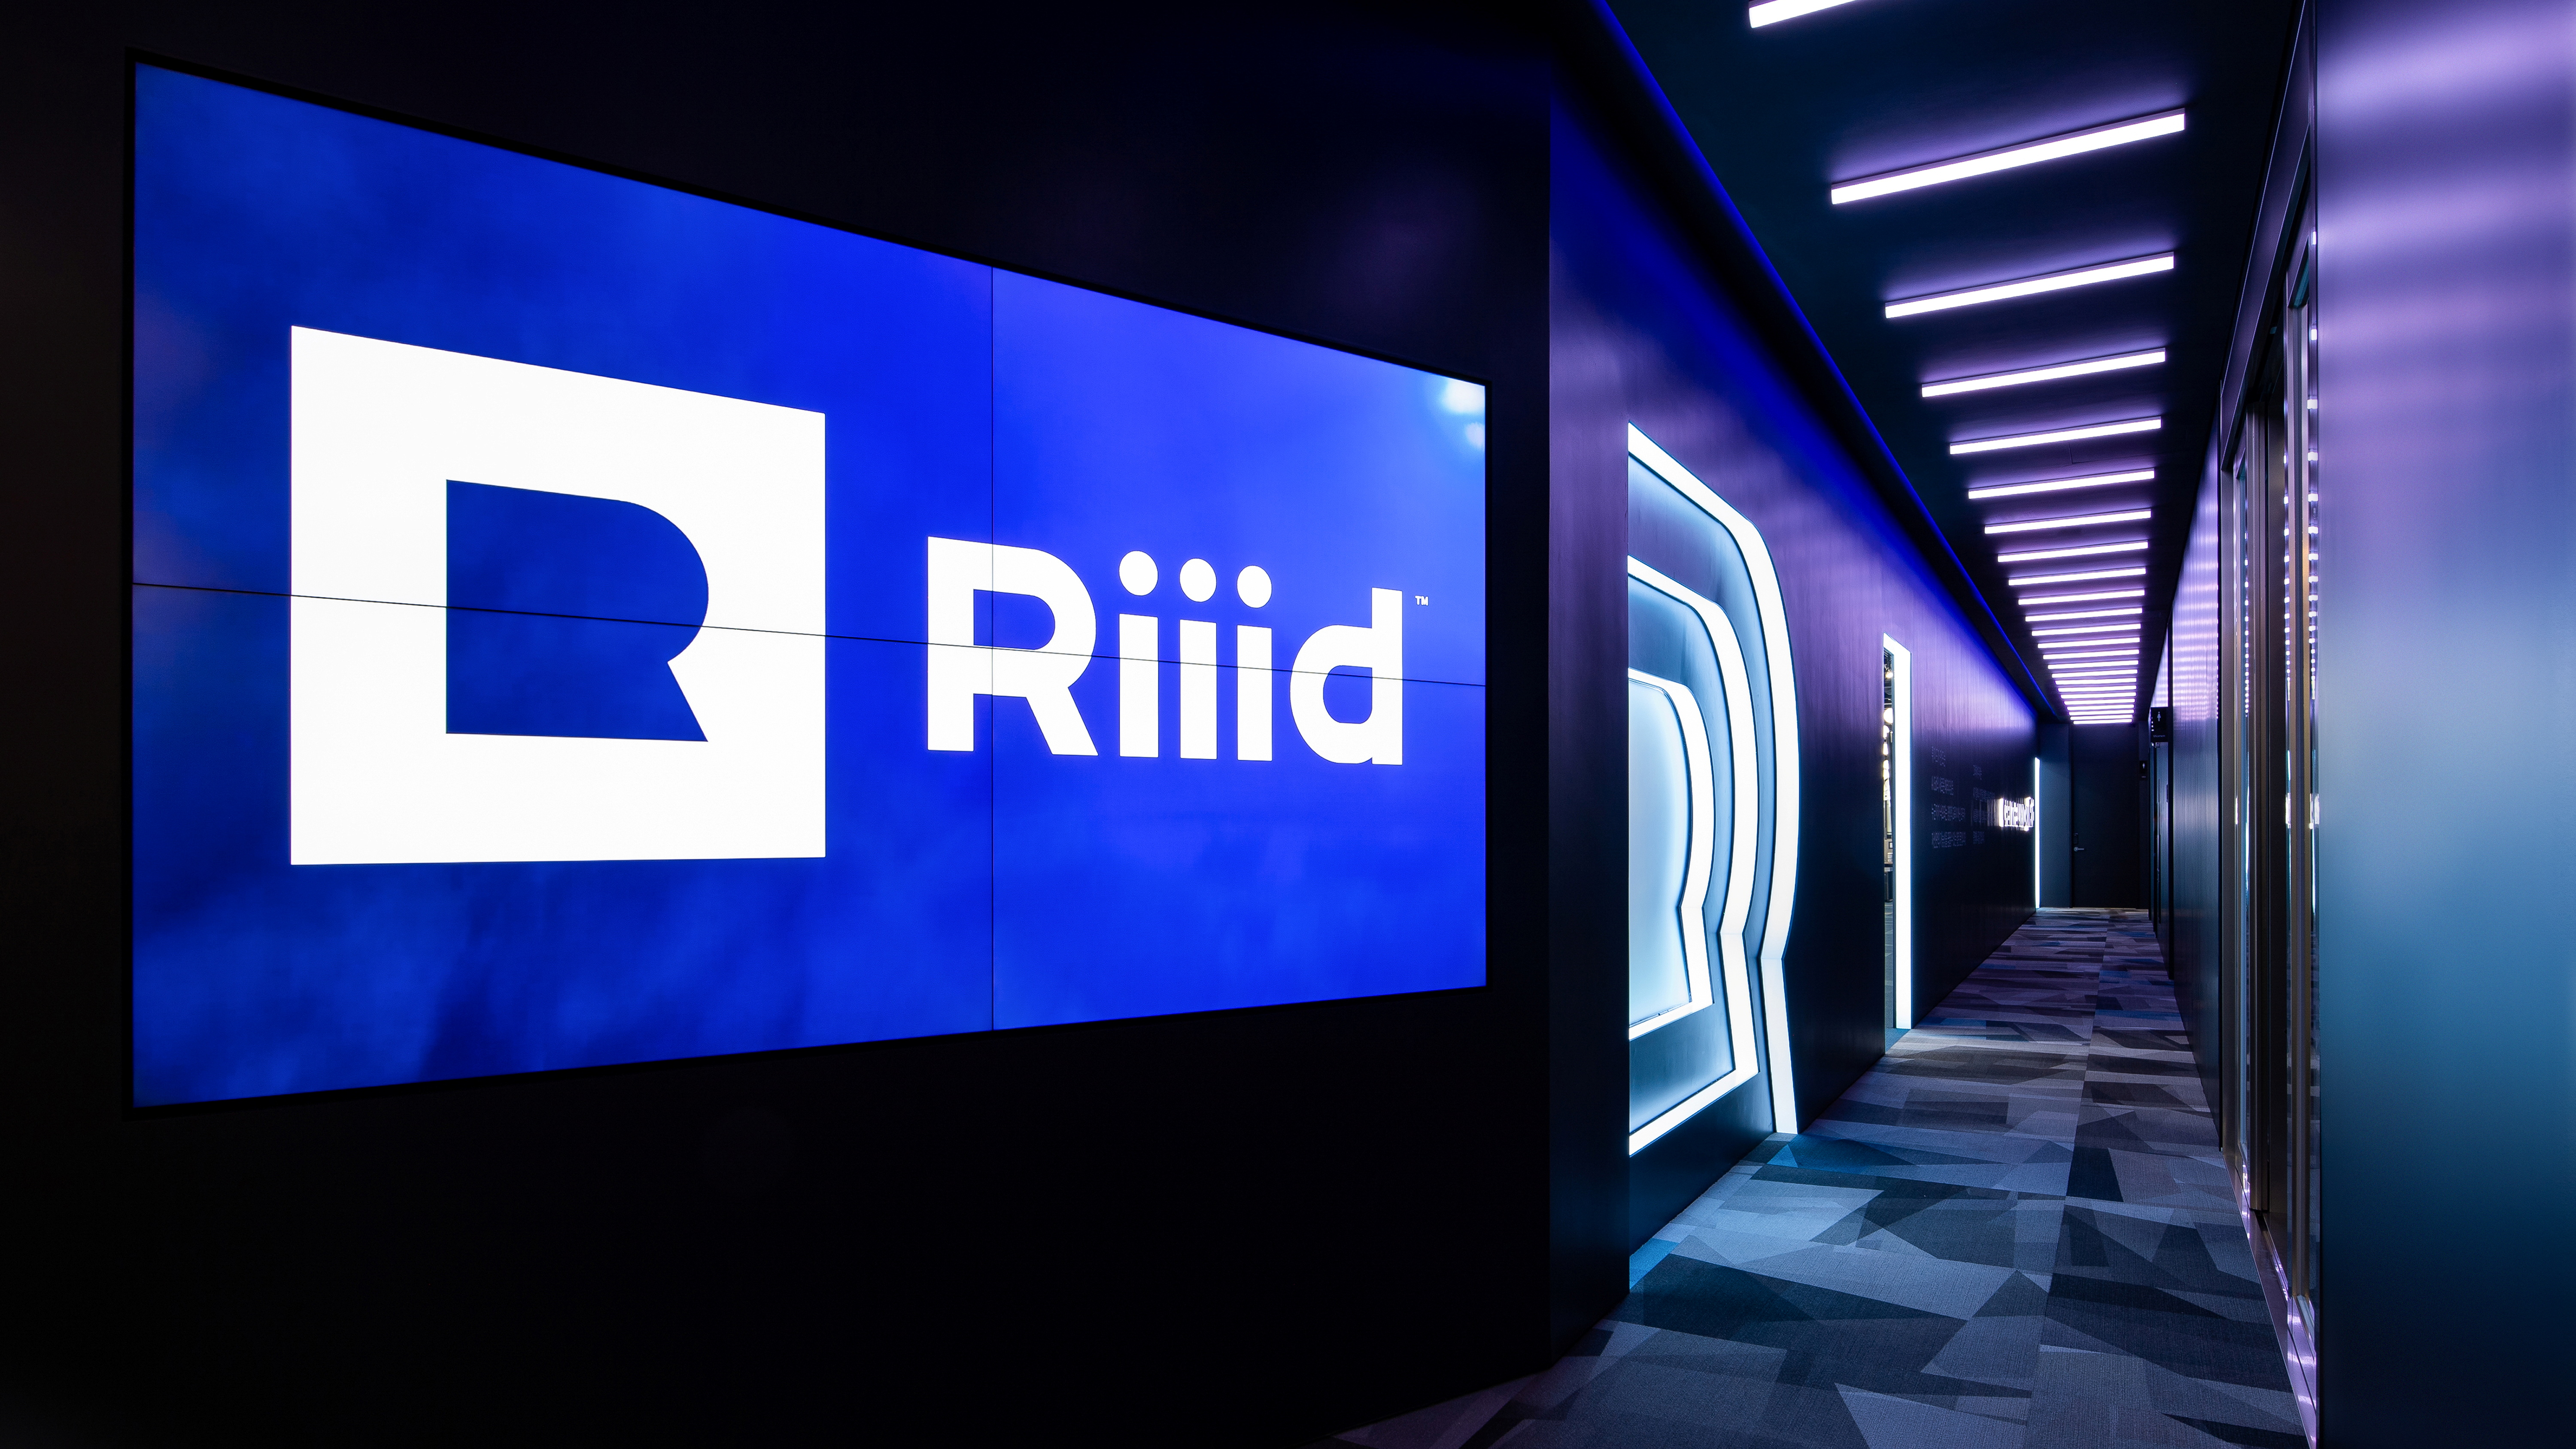 Logo of South Korean AI education technology startup Riiid is displayed in the hallway of the company's headquarters in Seoul, South Korea in this undated February 2021 handout photo. Riiid/Handout via REUTERS